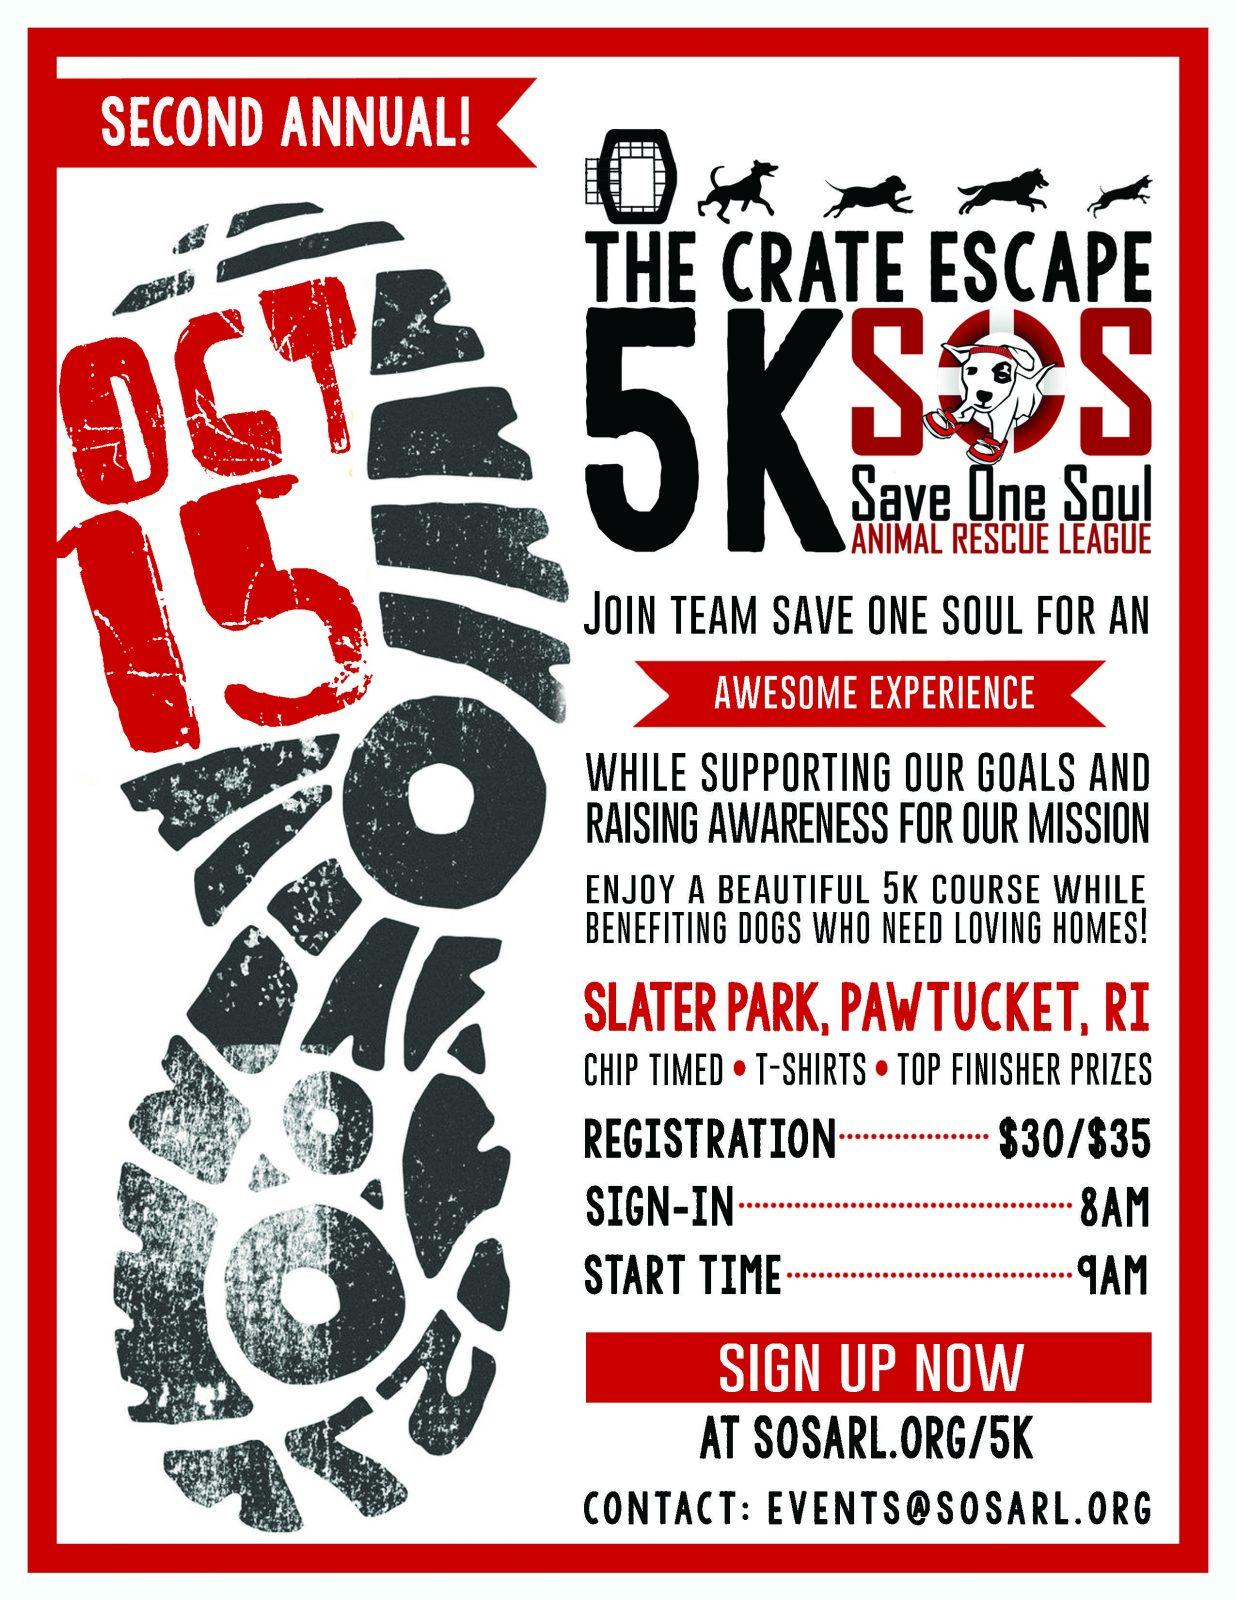 Crate Escape 5K Flyer